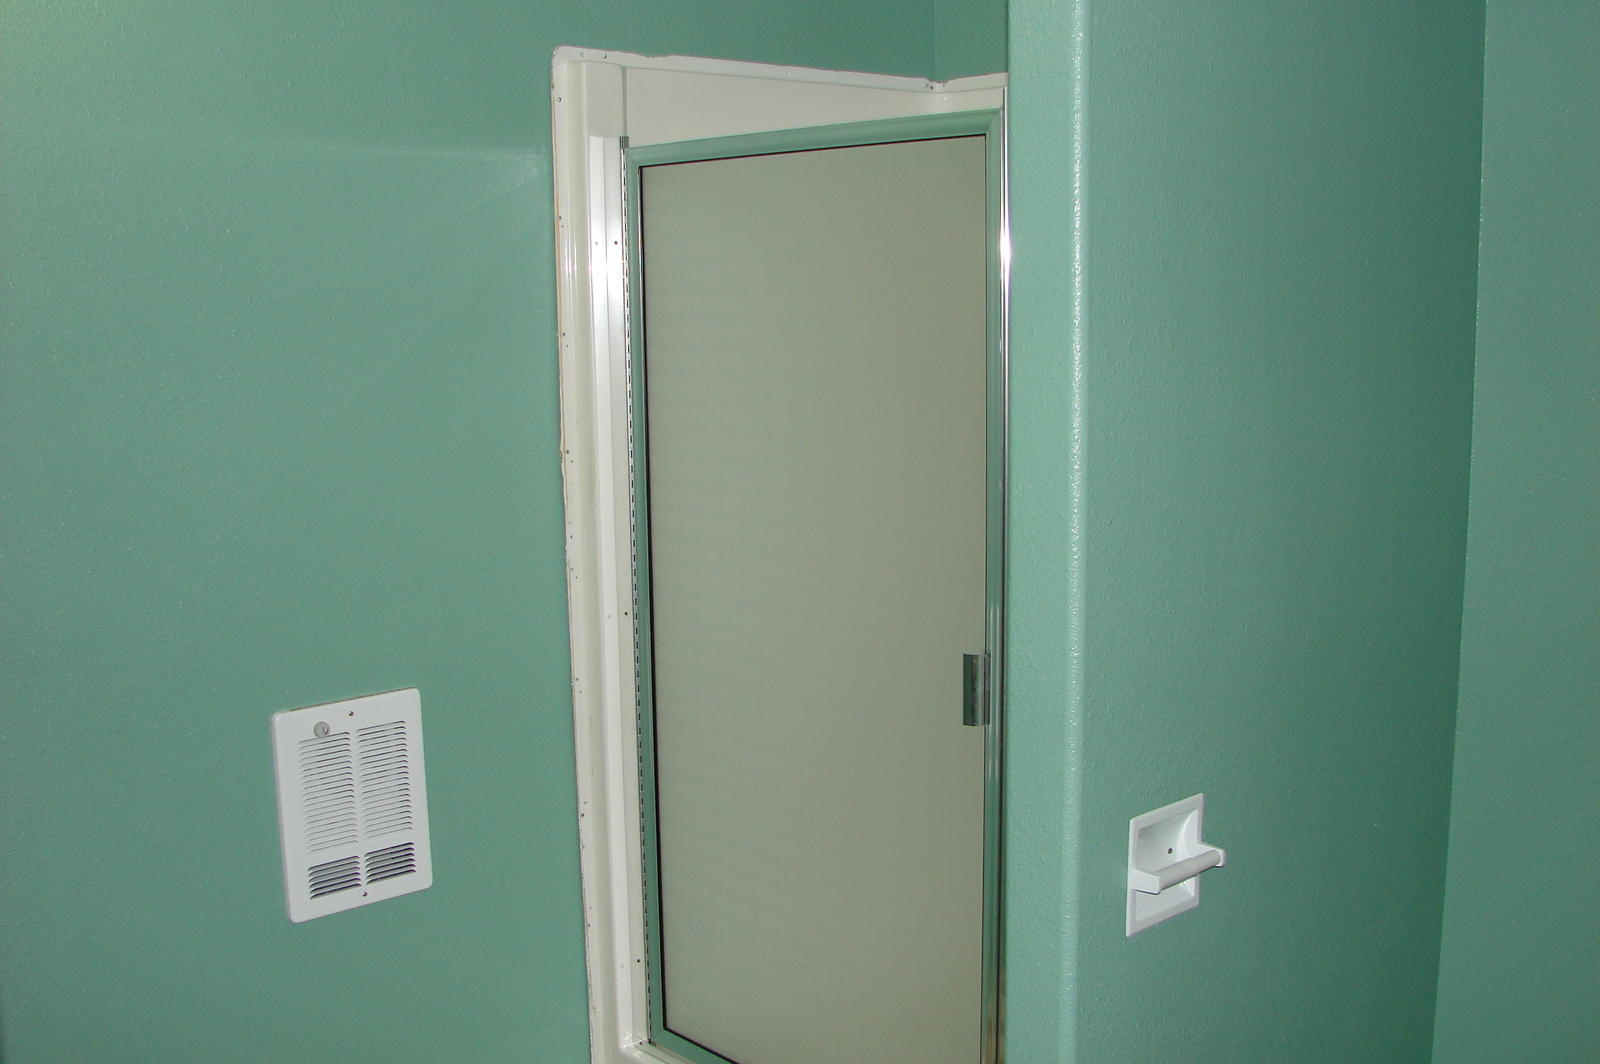 Name: 3-16-12.jpg